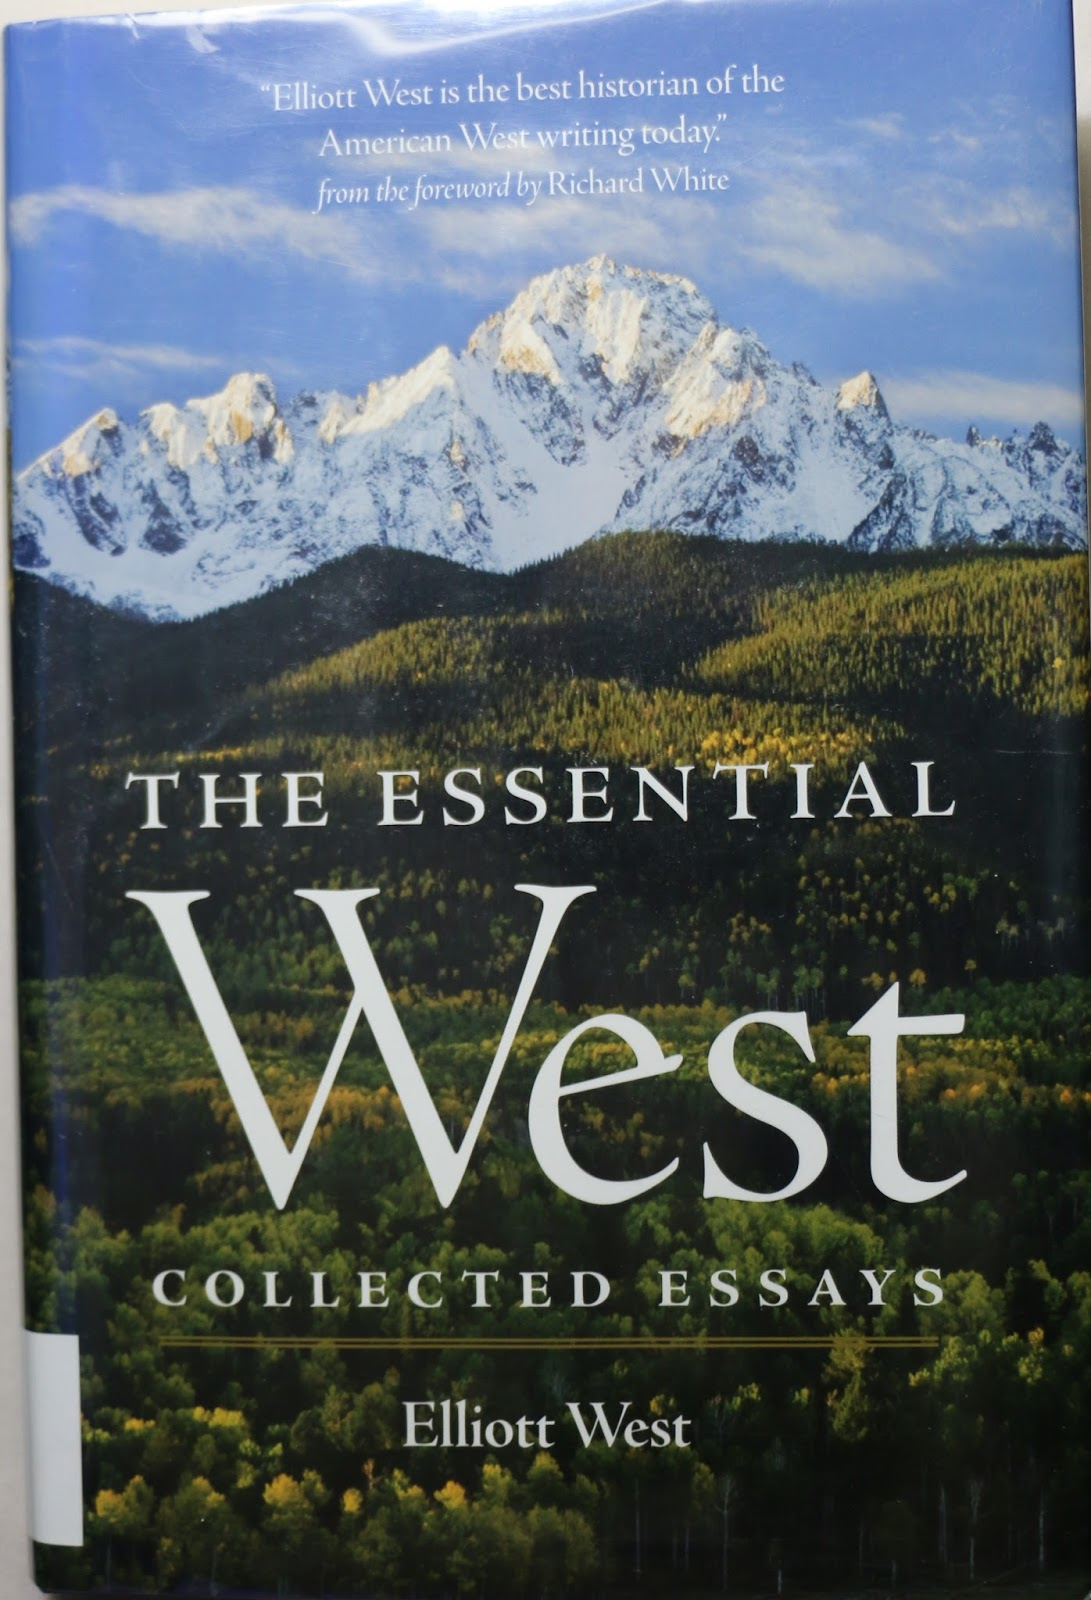 "contested plains by elliot west essay Elliott west ""elliott west is the best historian of the american west writing most recently the essential west: collected essays the contested plains."